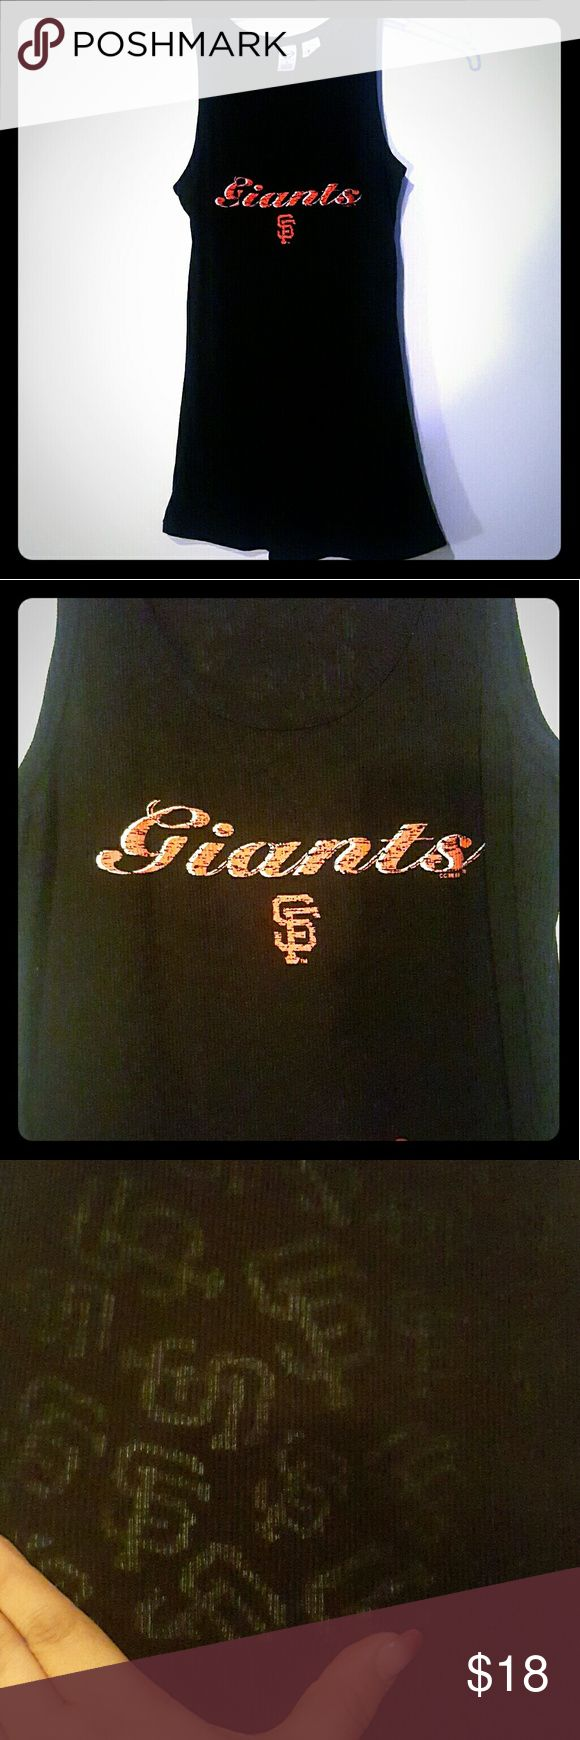 SF Giants Ladies Tank Black MLB SF Giants Ladies Tank top. Worn once. In great shape. Has logo hidden in material. See 3rd image for example Concept Sports Tops Tank Tops